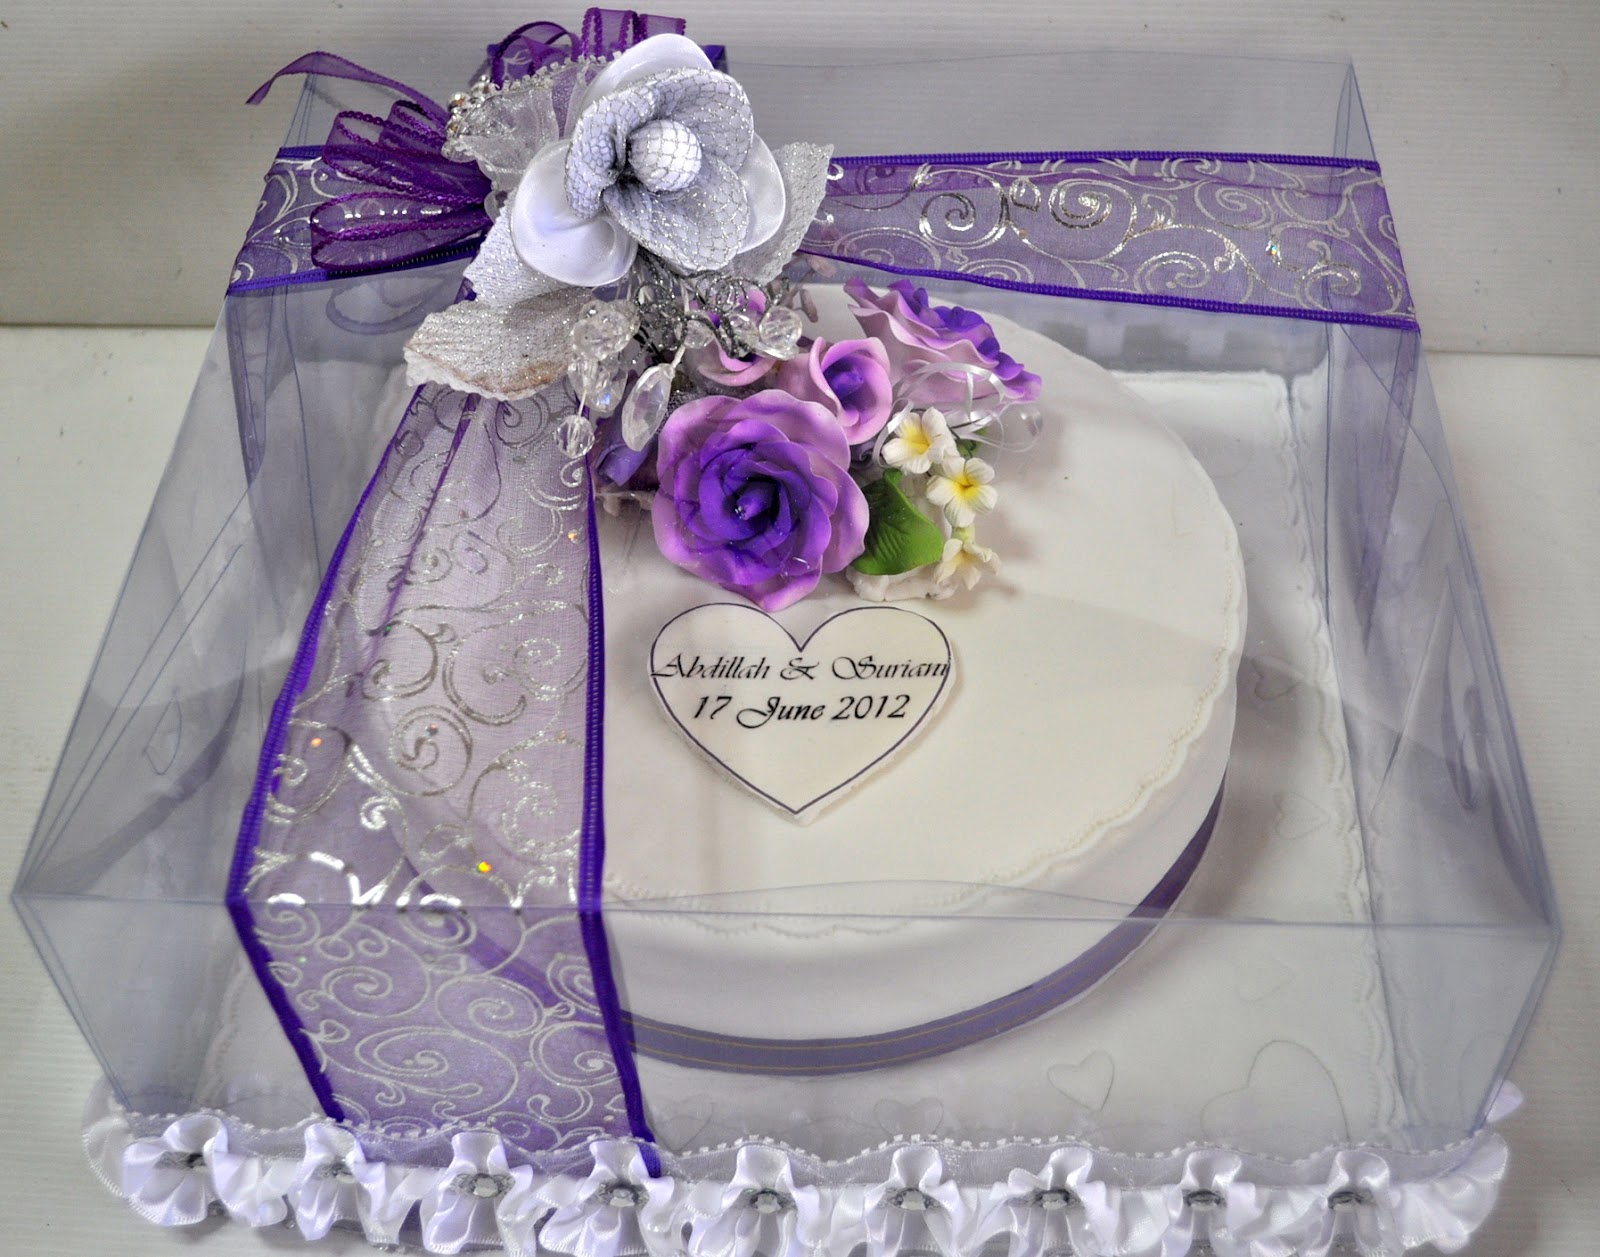 halal wedding cake singapore izah s kitchen hantaran engagement cake 15036